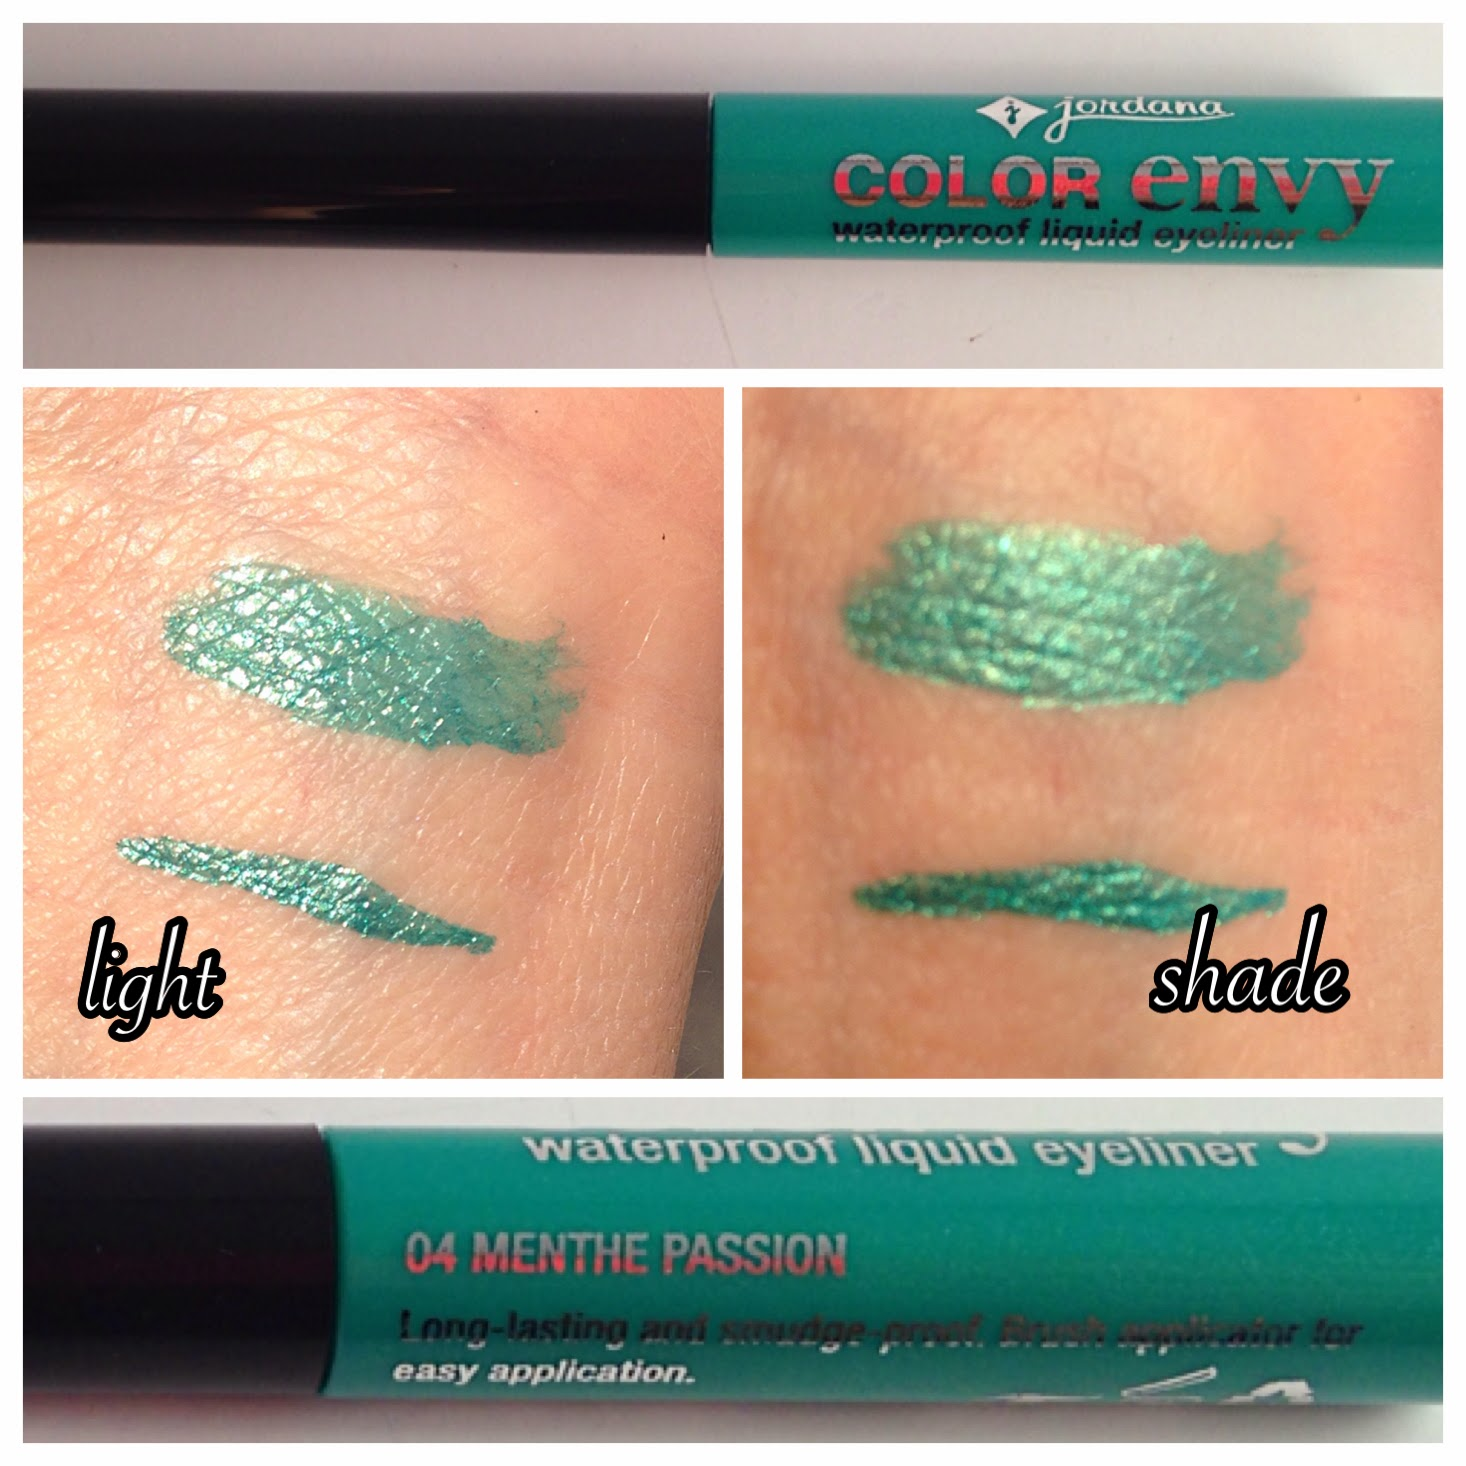 Jordana Color Envy Waterproof liquid eyeliner in Menthe Passion